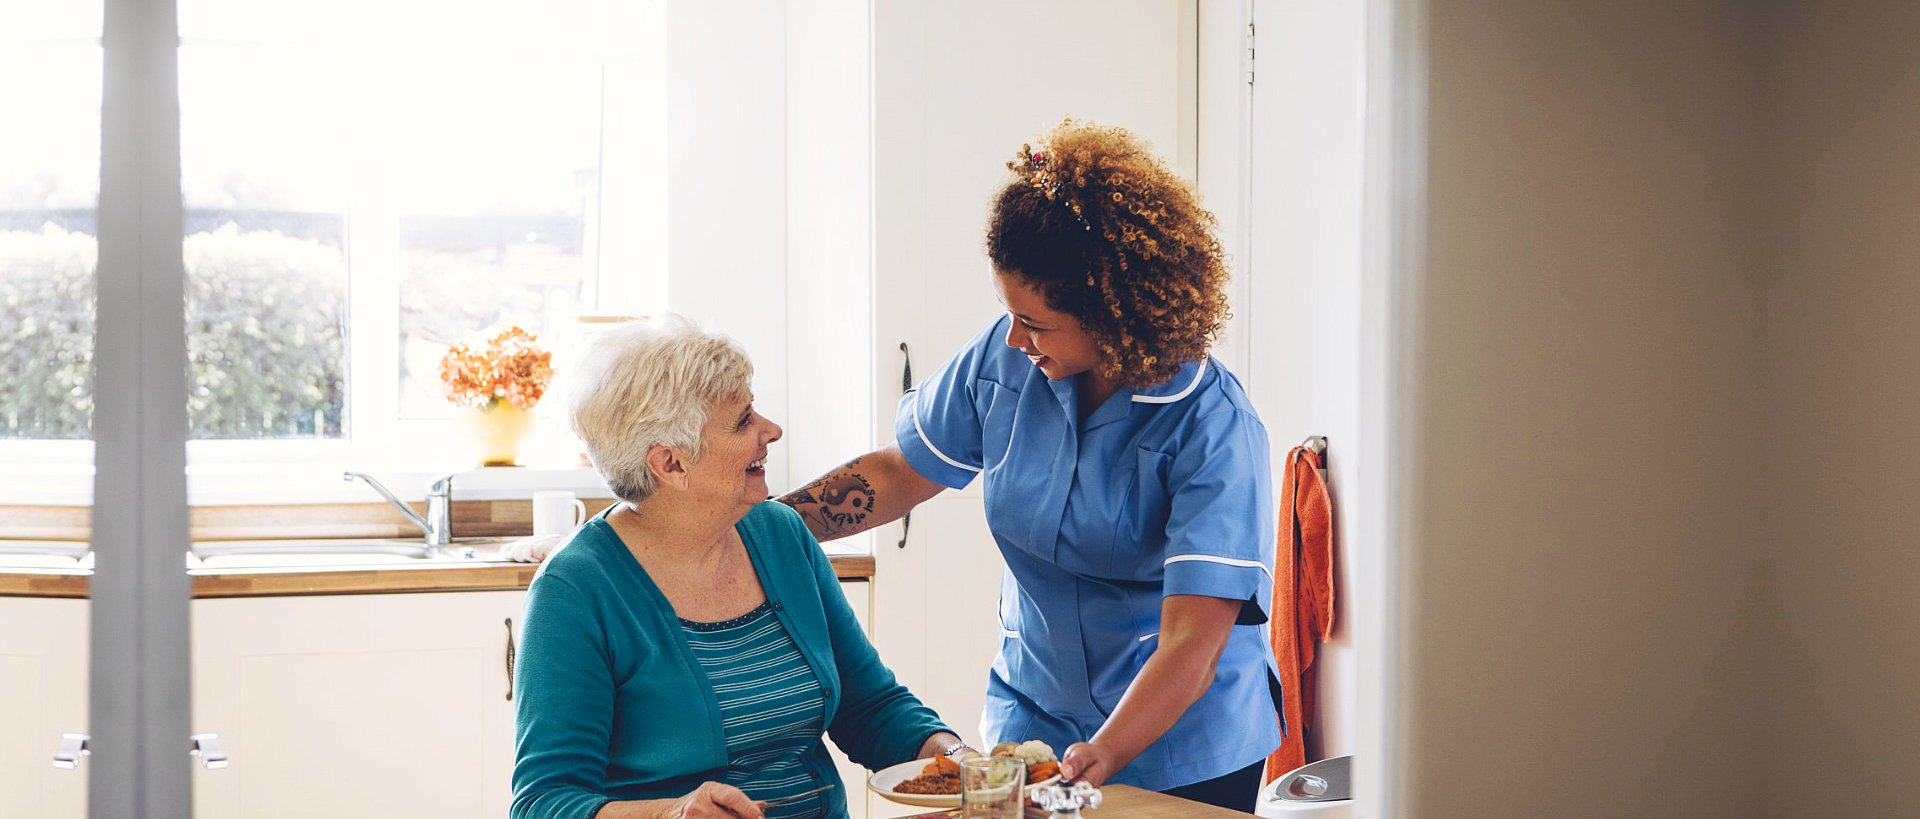 nurse smiling with an elderly woman